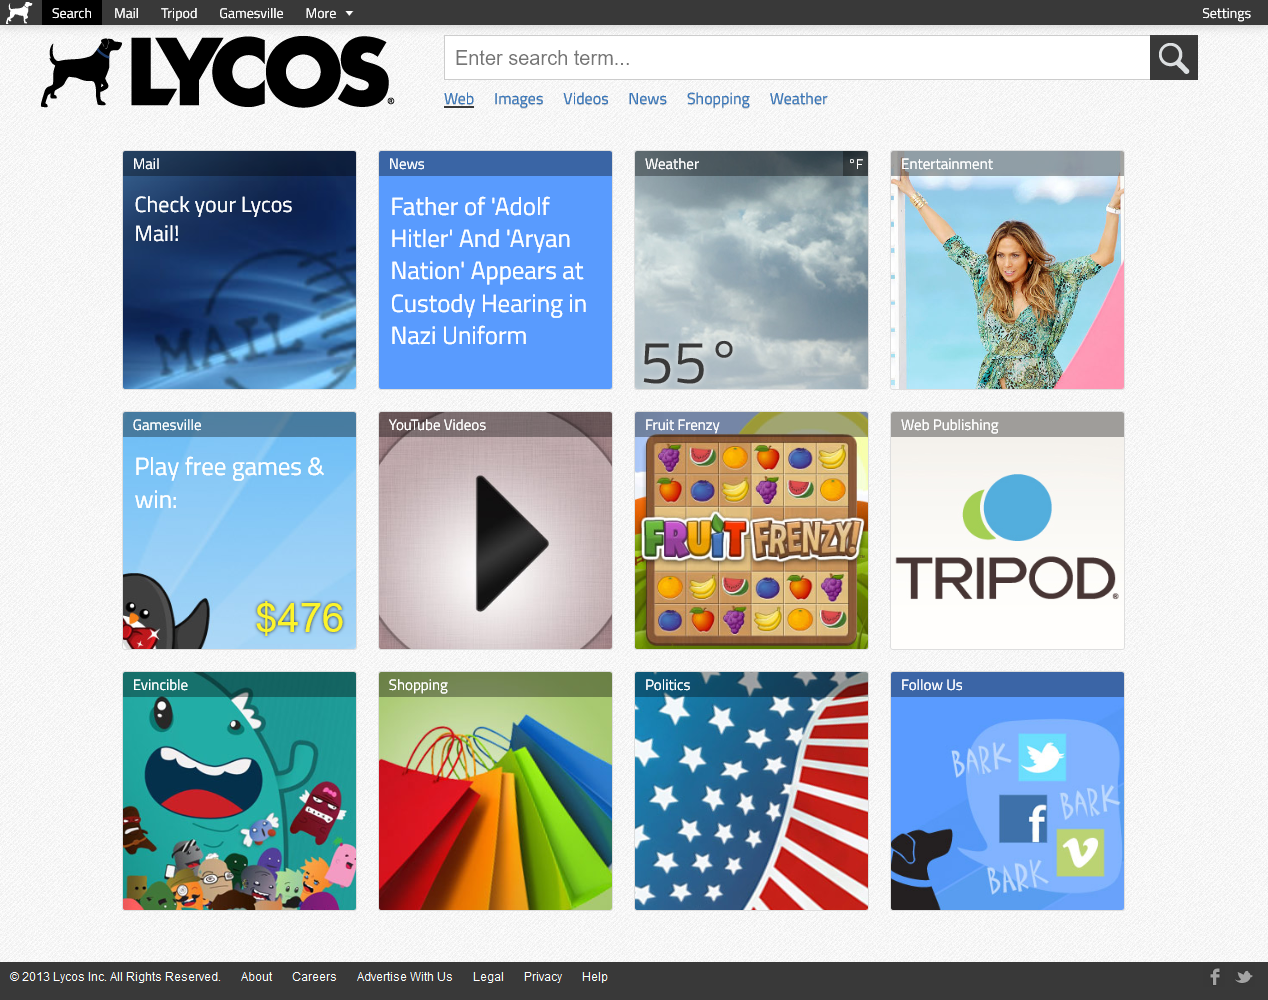 Lycos in 2013